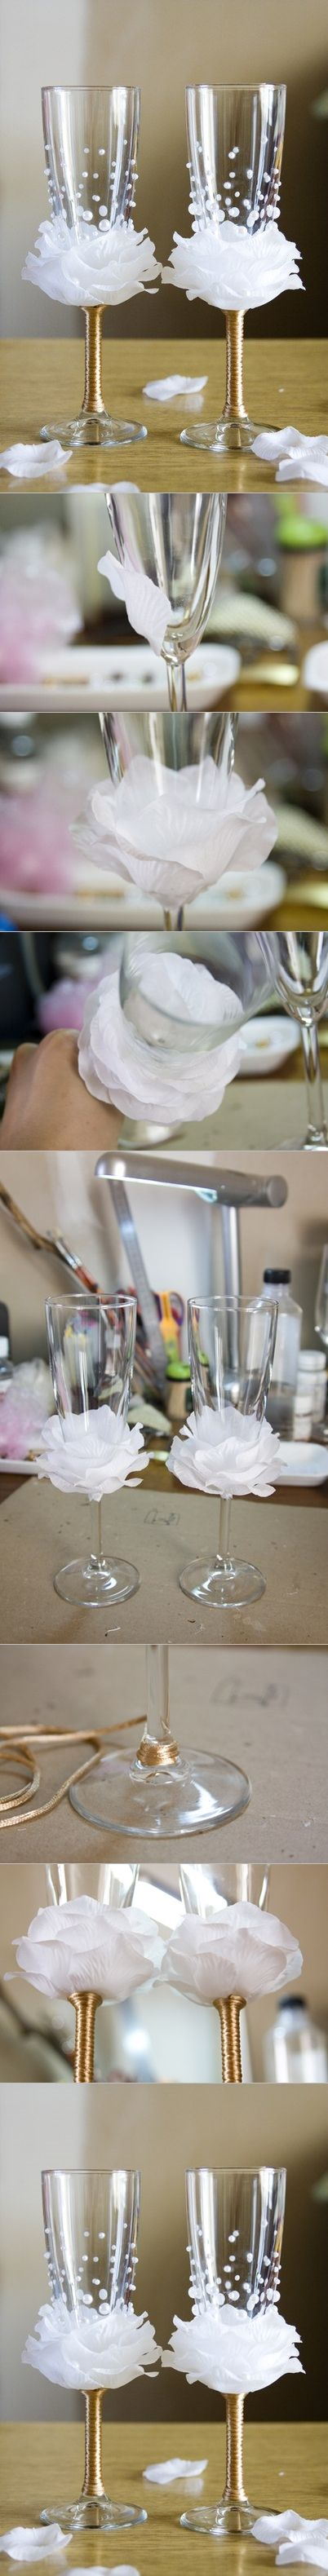 How to DIY Flower Bead Decorated Wine Glasses | www.FabArtDIY.com LIKE Us on Facebook ==> https://www.facebook.com/FabArtDIY